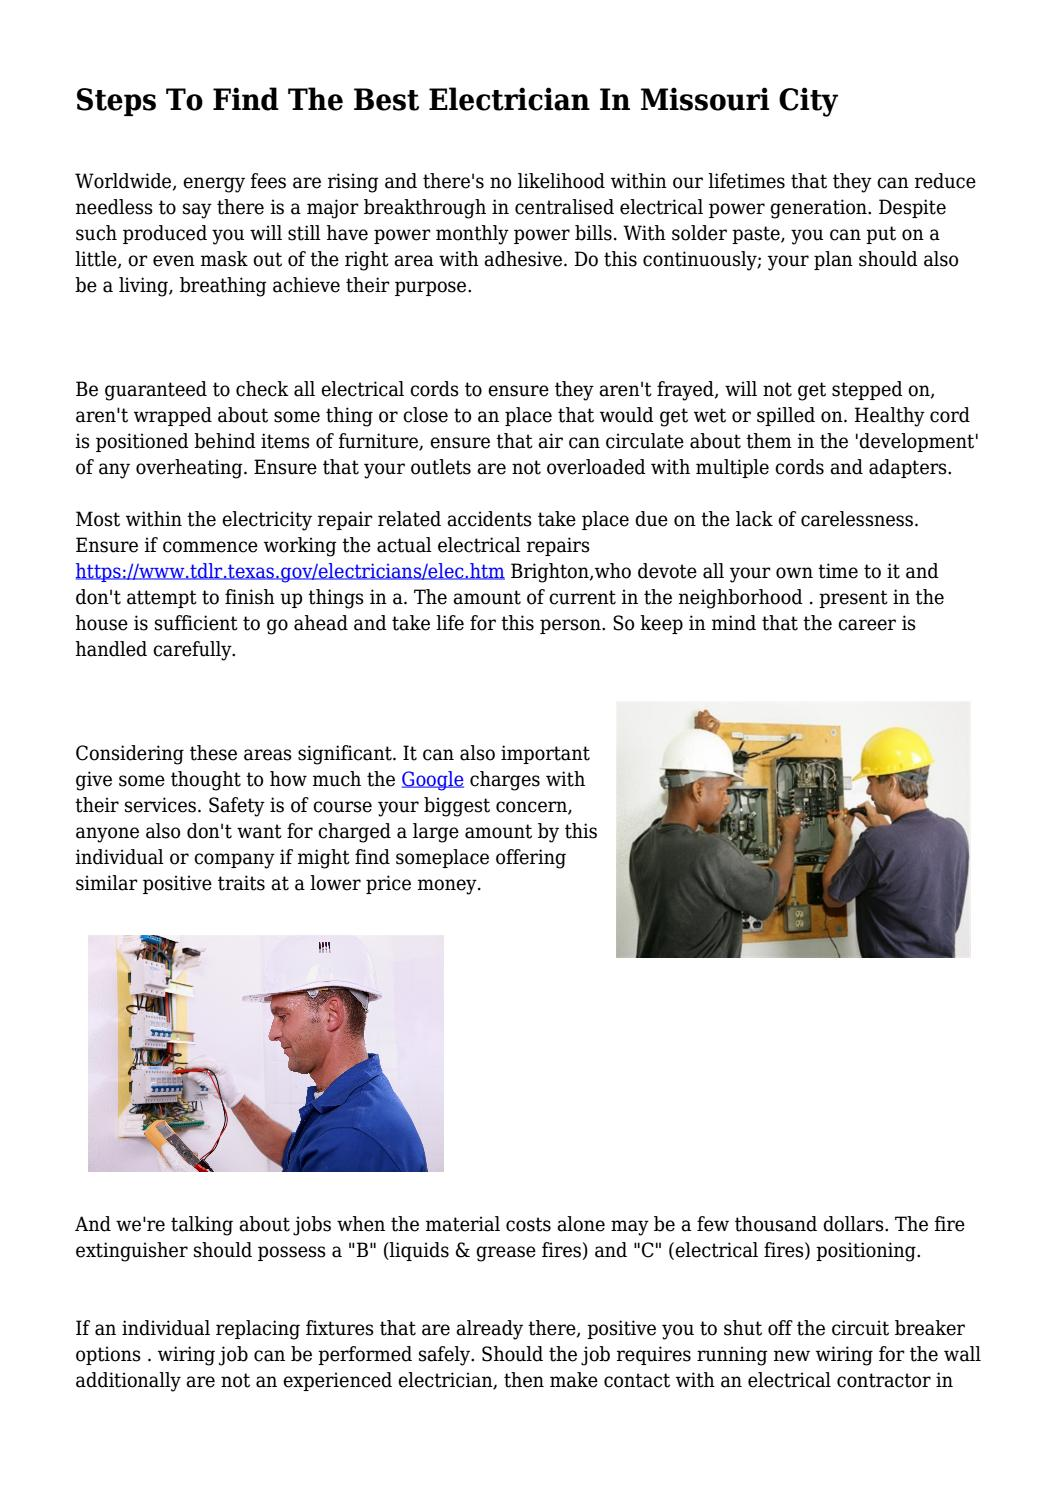 Steps To Find The Best Electrician In Missouri City By Electrical Wiring Jobs Bellbonaccorsirf Issuu